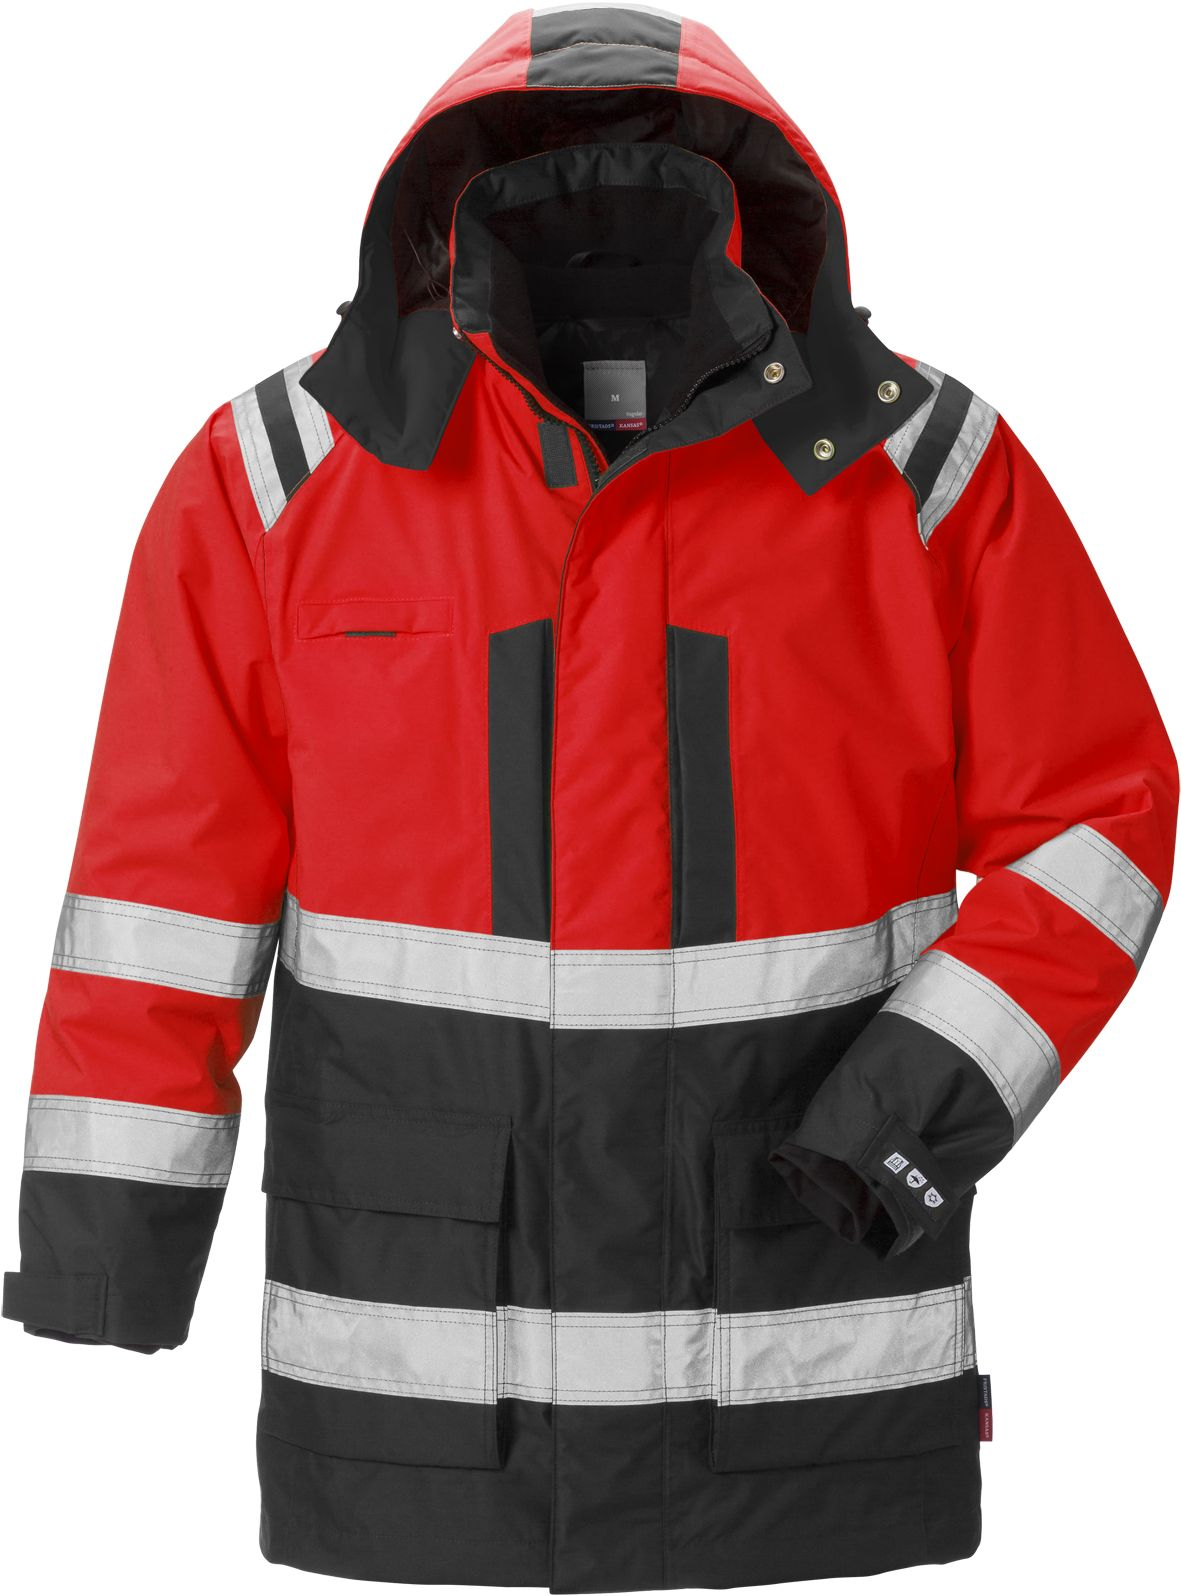 0487bdf5 Fristads High Vis Airtech 3-In-1 Parka CL 3 4036 GTT Hi Vis Red Black